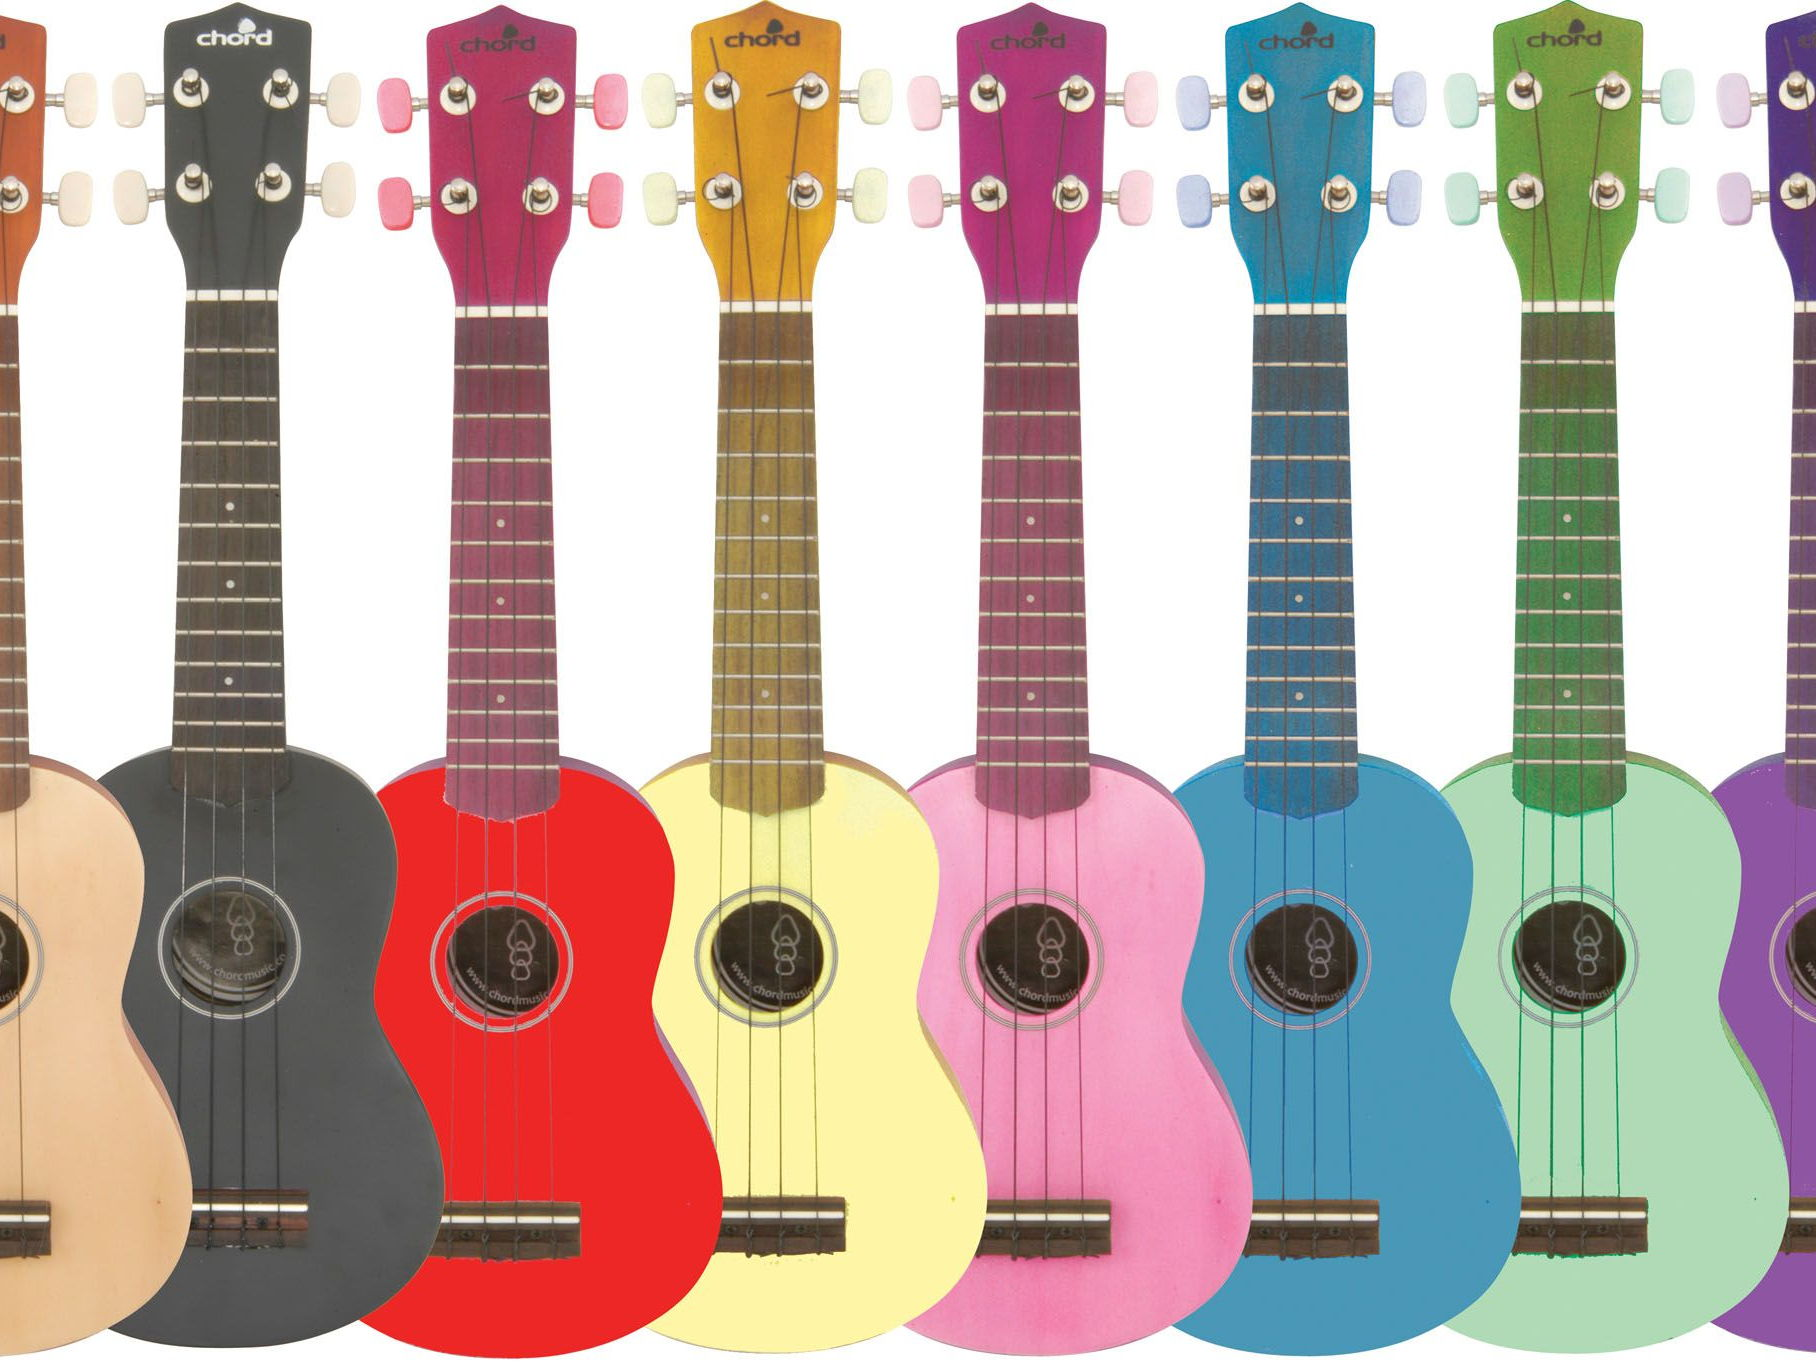 MUSIC KS3 POP MUSIC MULTIPLE LESSONS UKULELE / KEYBOARD / VOICE *mac users only*